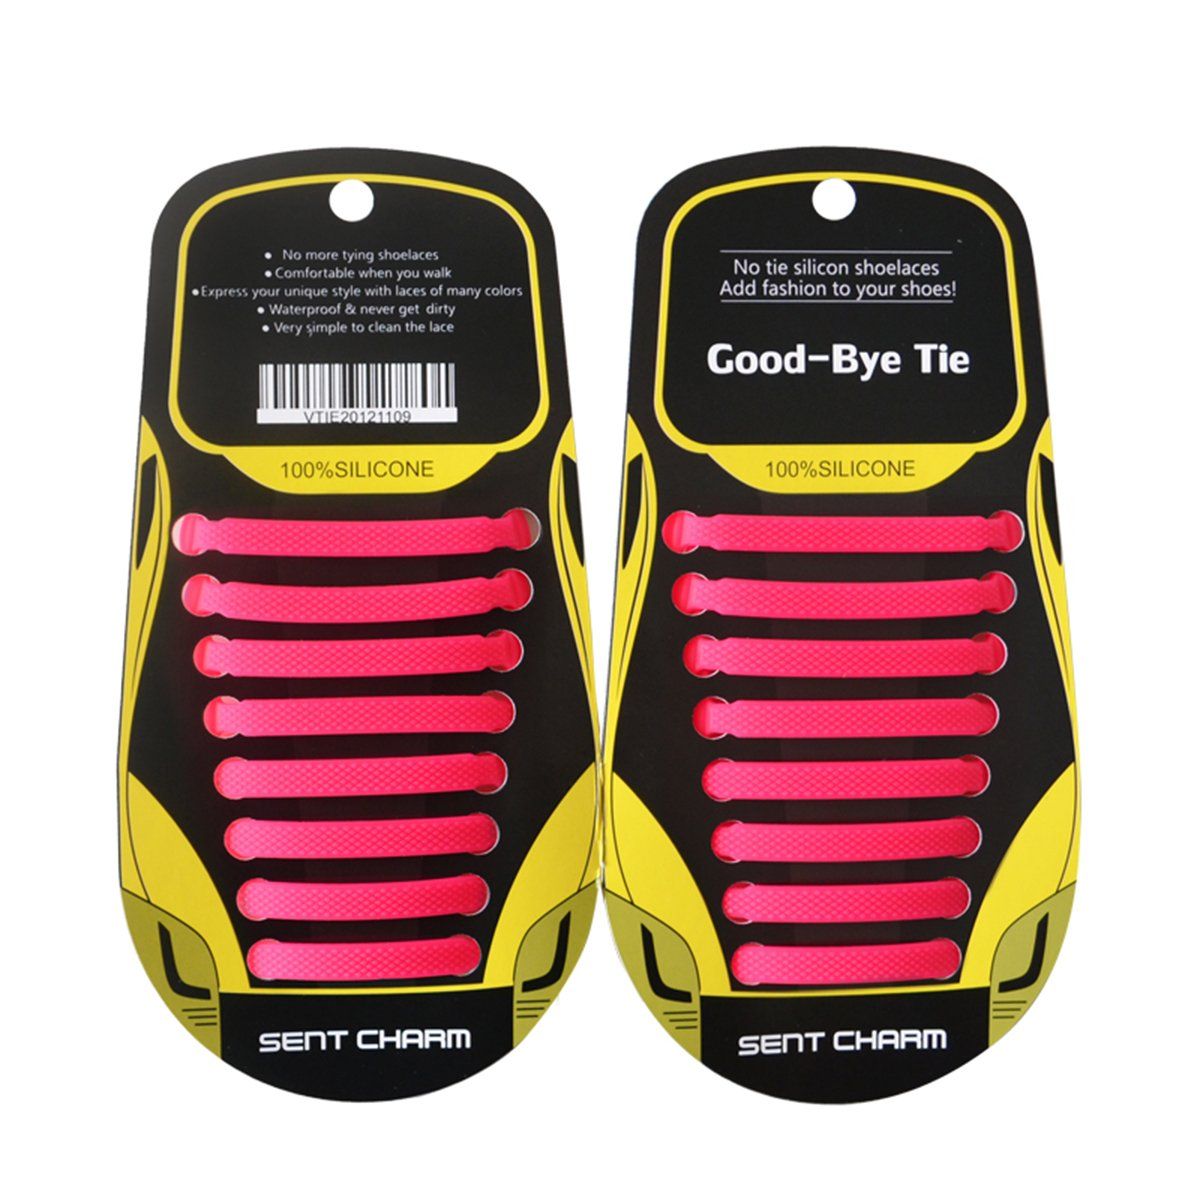 No Tie Shoelaces for Kids and Adults - SunJolly Waterproof & Stretchy Silicone Tieless Shoe Laces - for Athletic & Dress Casual Shoes, Hiking Boots (Pink)